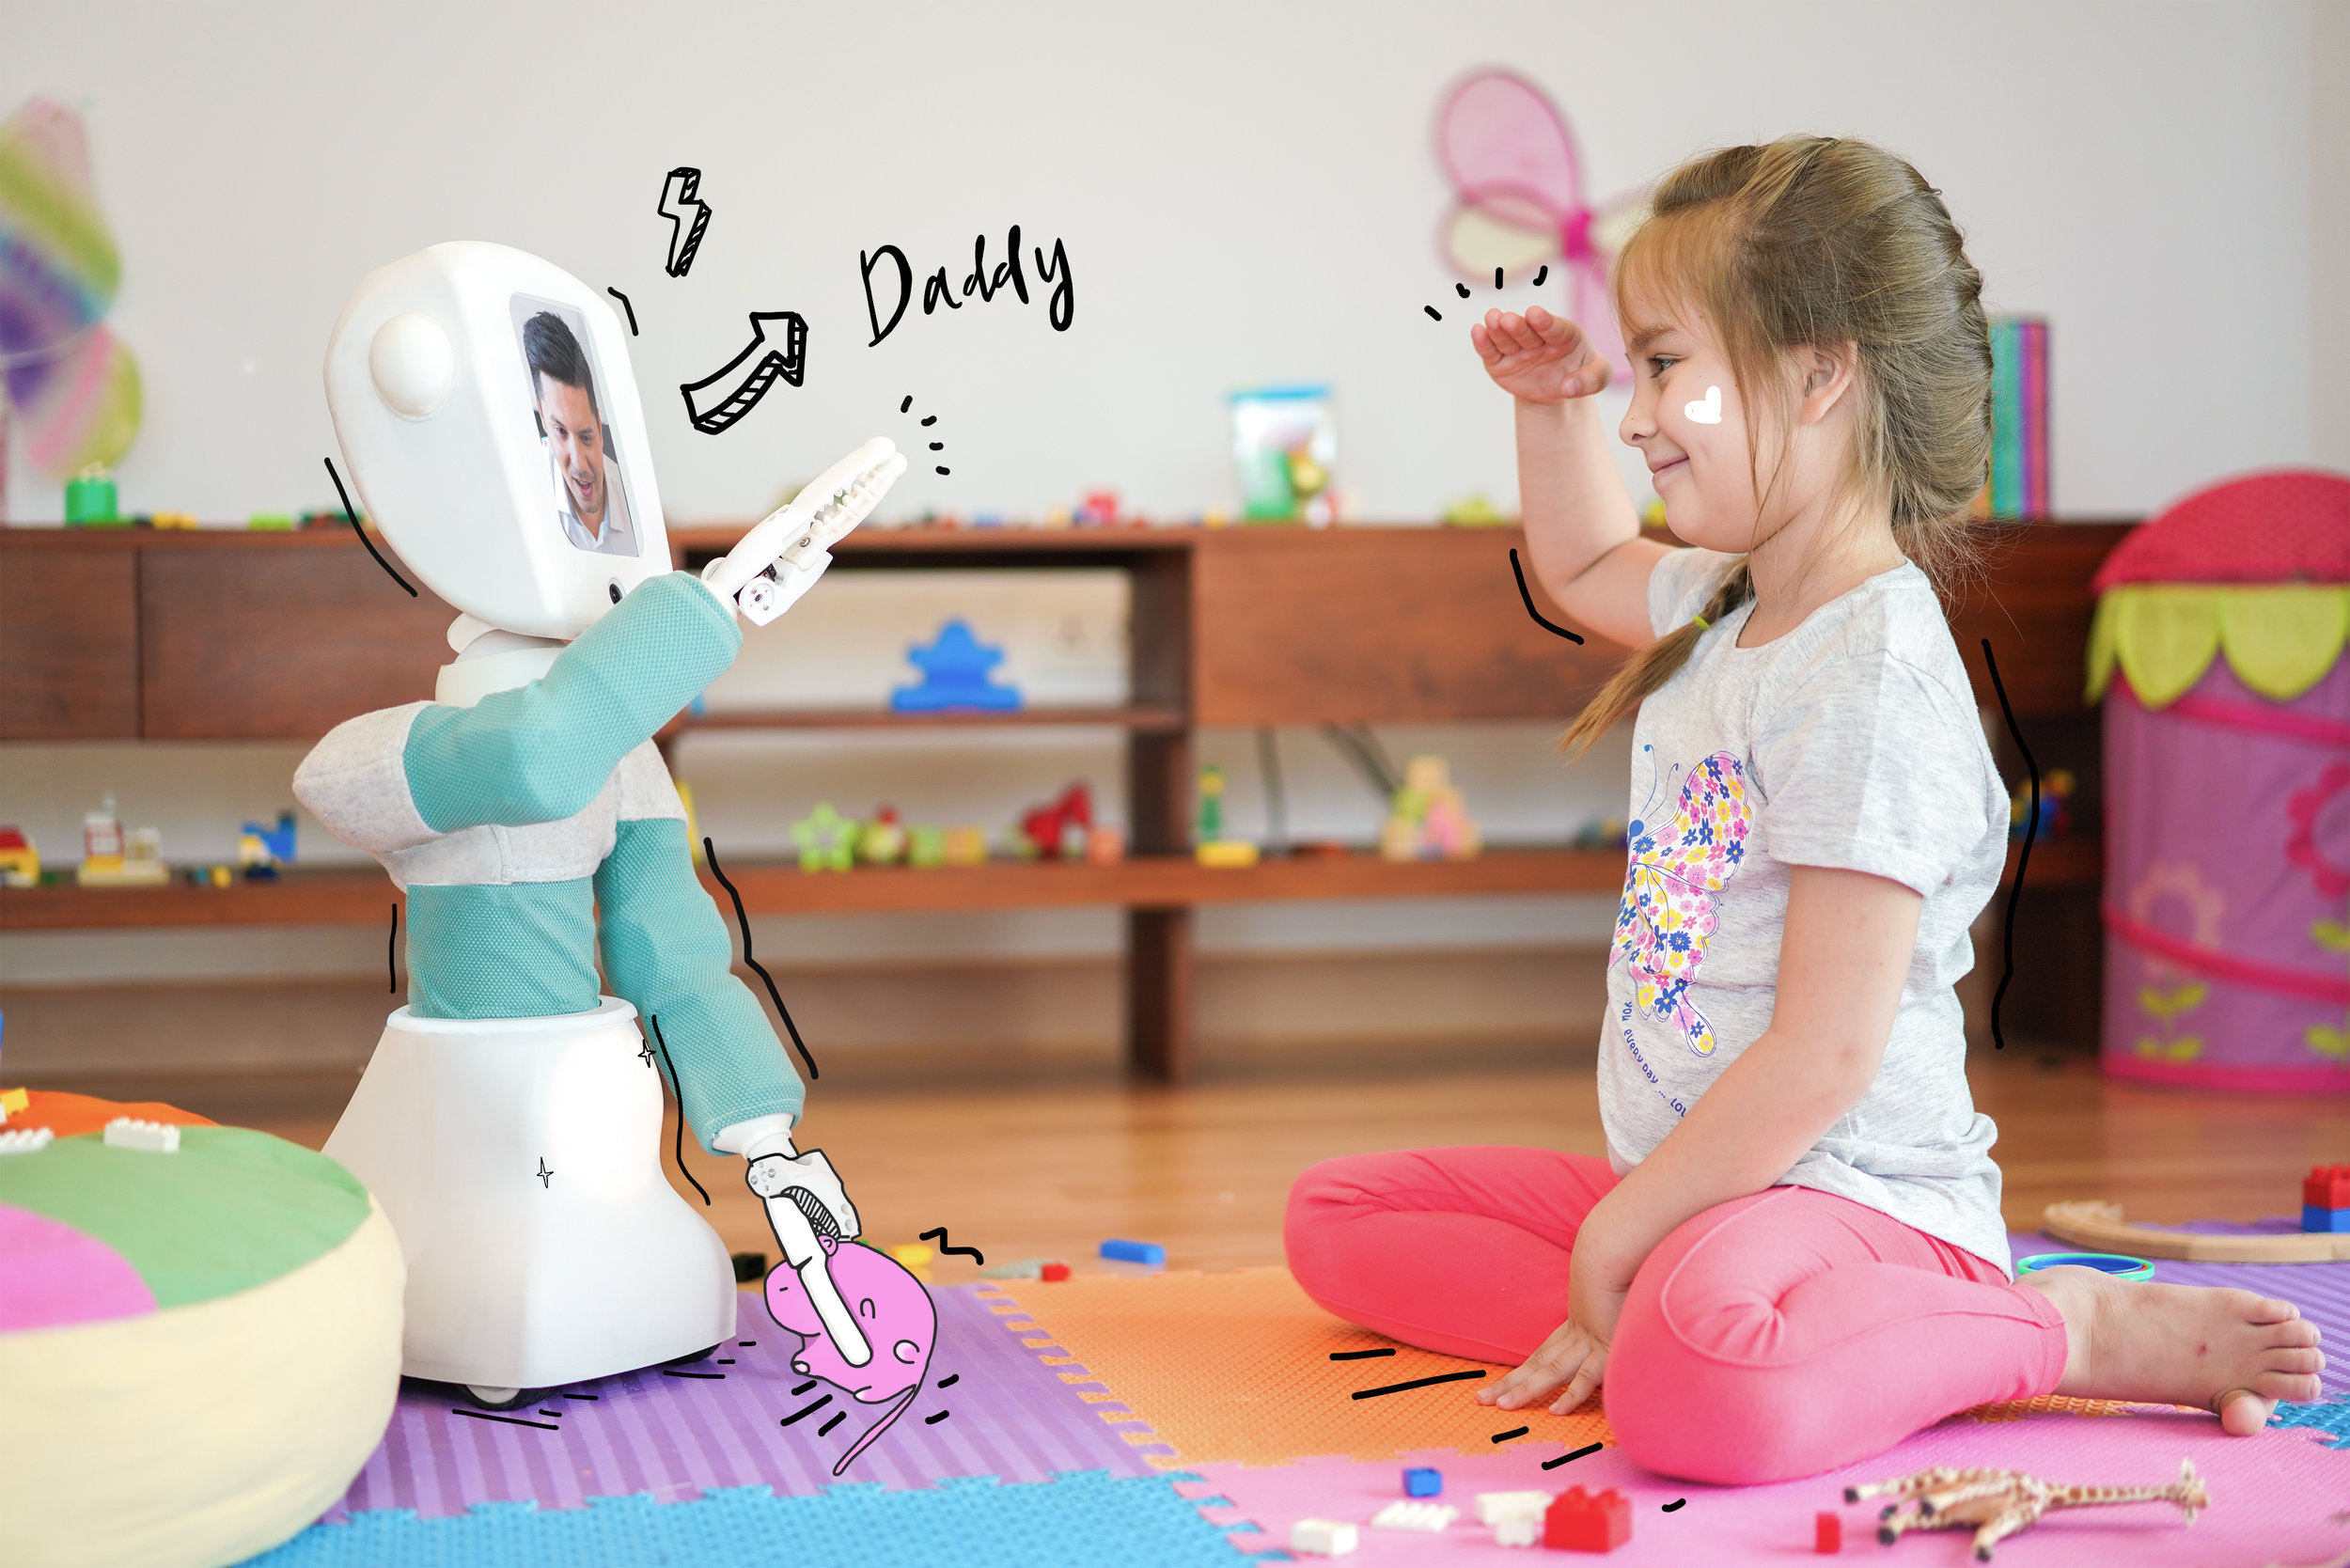 Enabling Natural Play Experiences, Remotely - Parents know how difficult it can be for young children to express themselves through voice/video calls. Young children don't respond well to a barrage of questions and engagements longer than five minutes are difficult. The whole experience can leave both child and parent feeling frustrated with the lack of intimacy.By enabling remote natural play experiences, Cushybots cuts through the confrontation of a voice/video call, allowing the parent to participate in ordinary play activities where communication flows naturally.